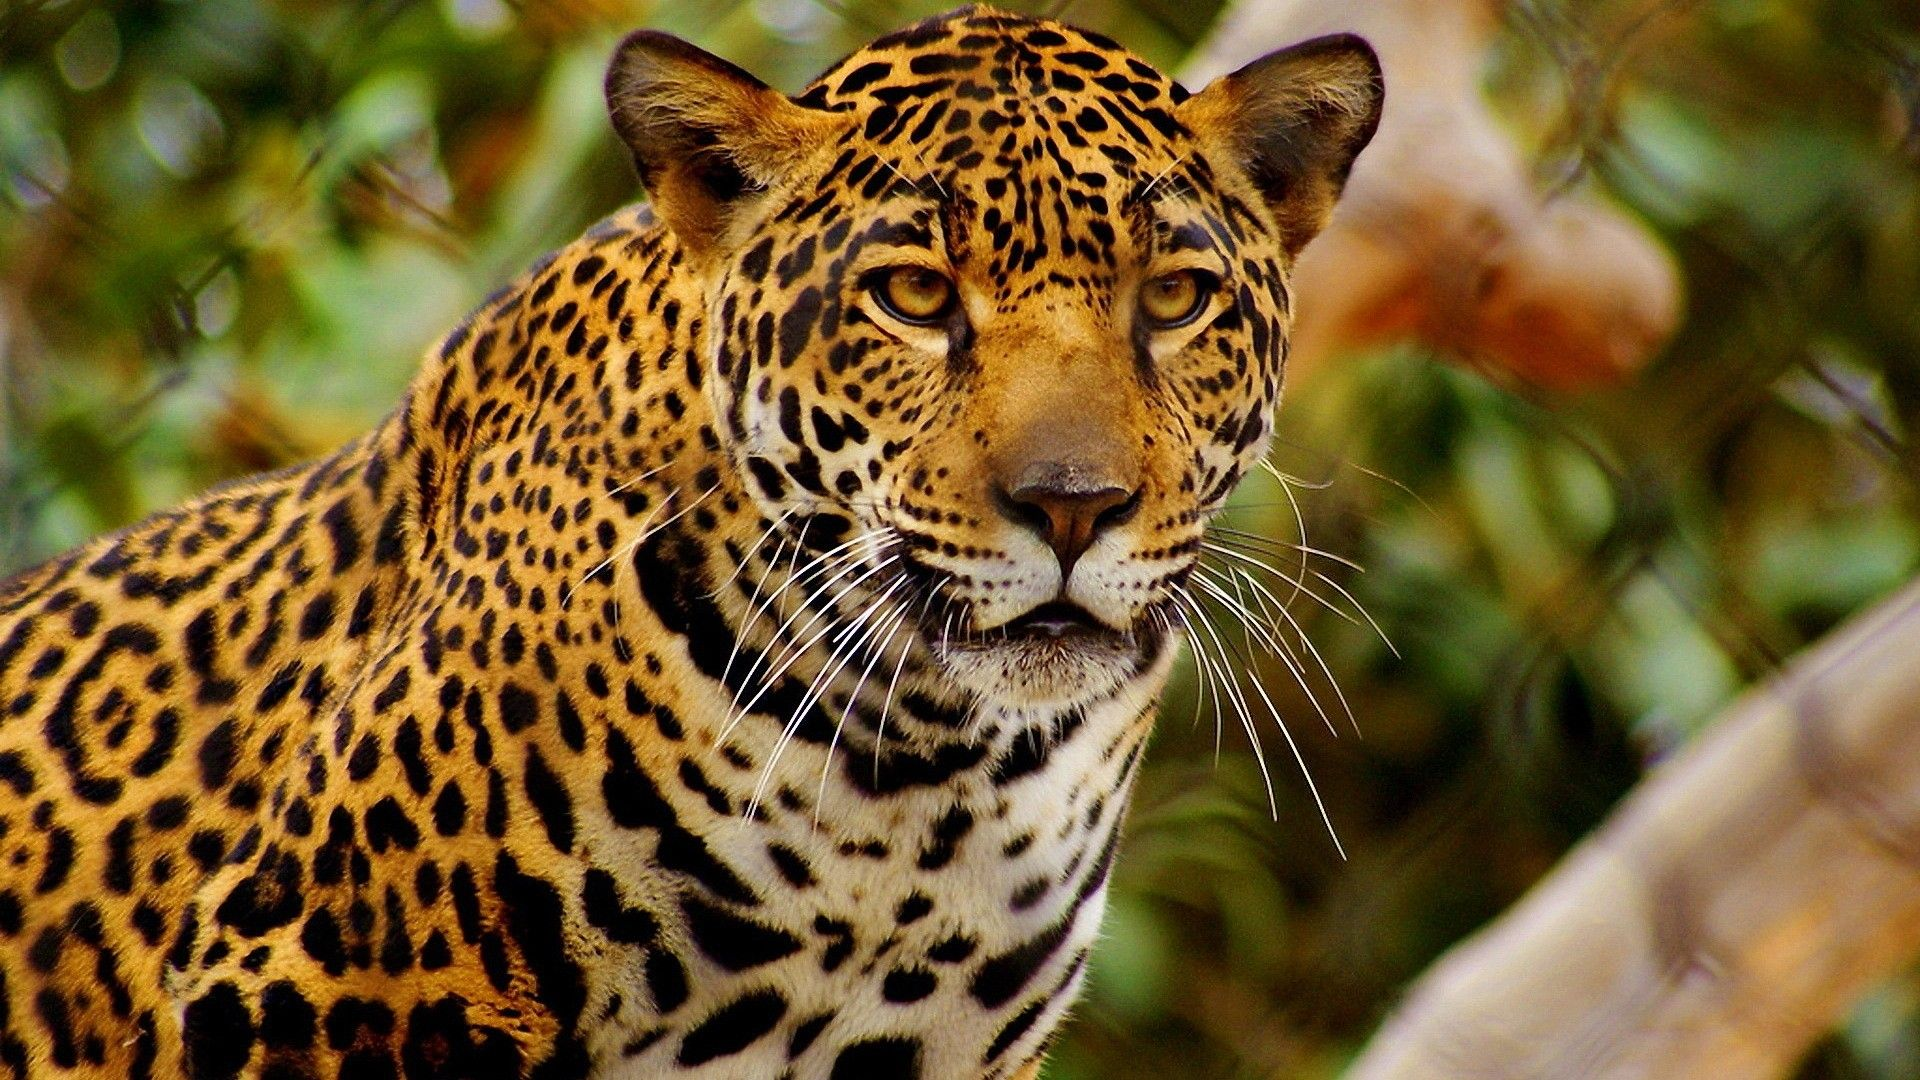 Beautiful Animal Pictures Wallpaper Animals Beautiful Cheetah Animals Beautiful Wallpapers Beautiful Cheetah Wallpaper Cheetah Background Jaguar Animal